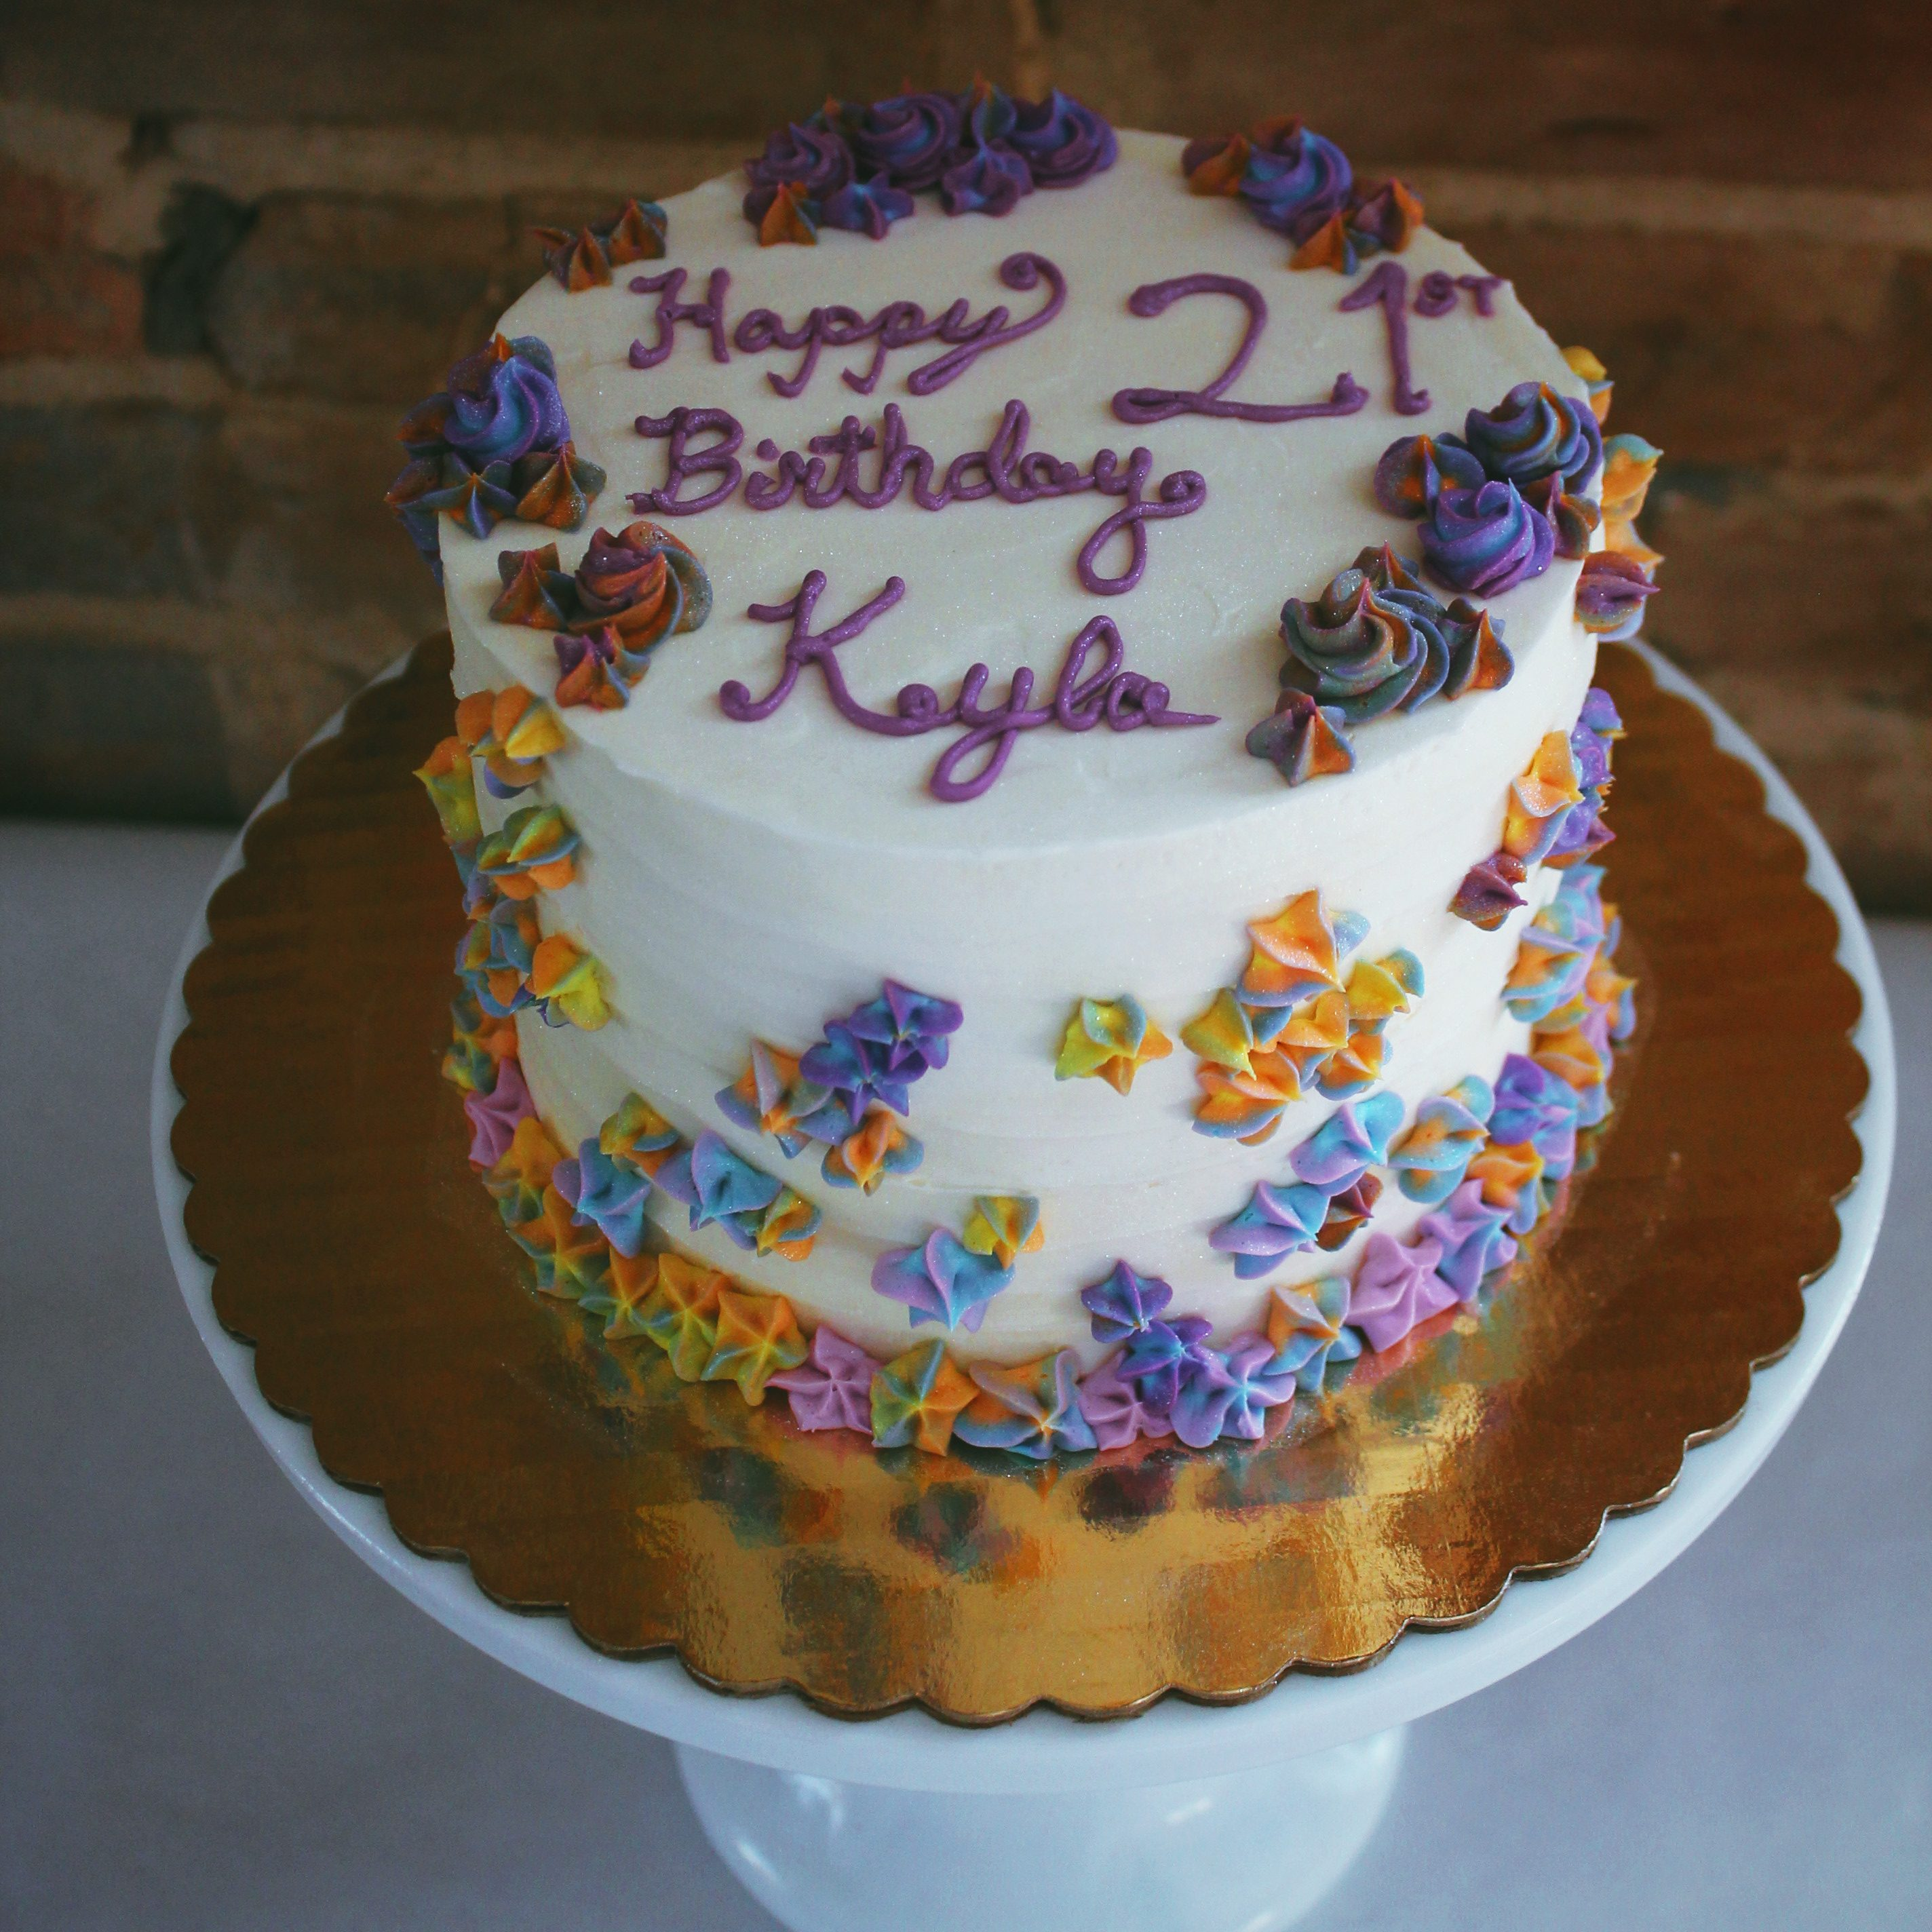 Funfetti birthday cake with multi-colored piped star flowers and rosettes